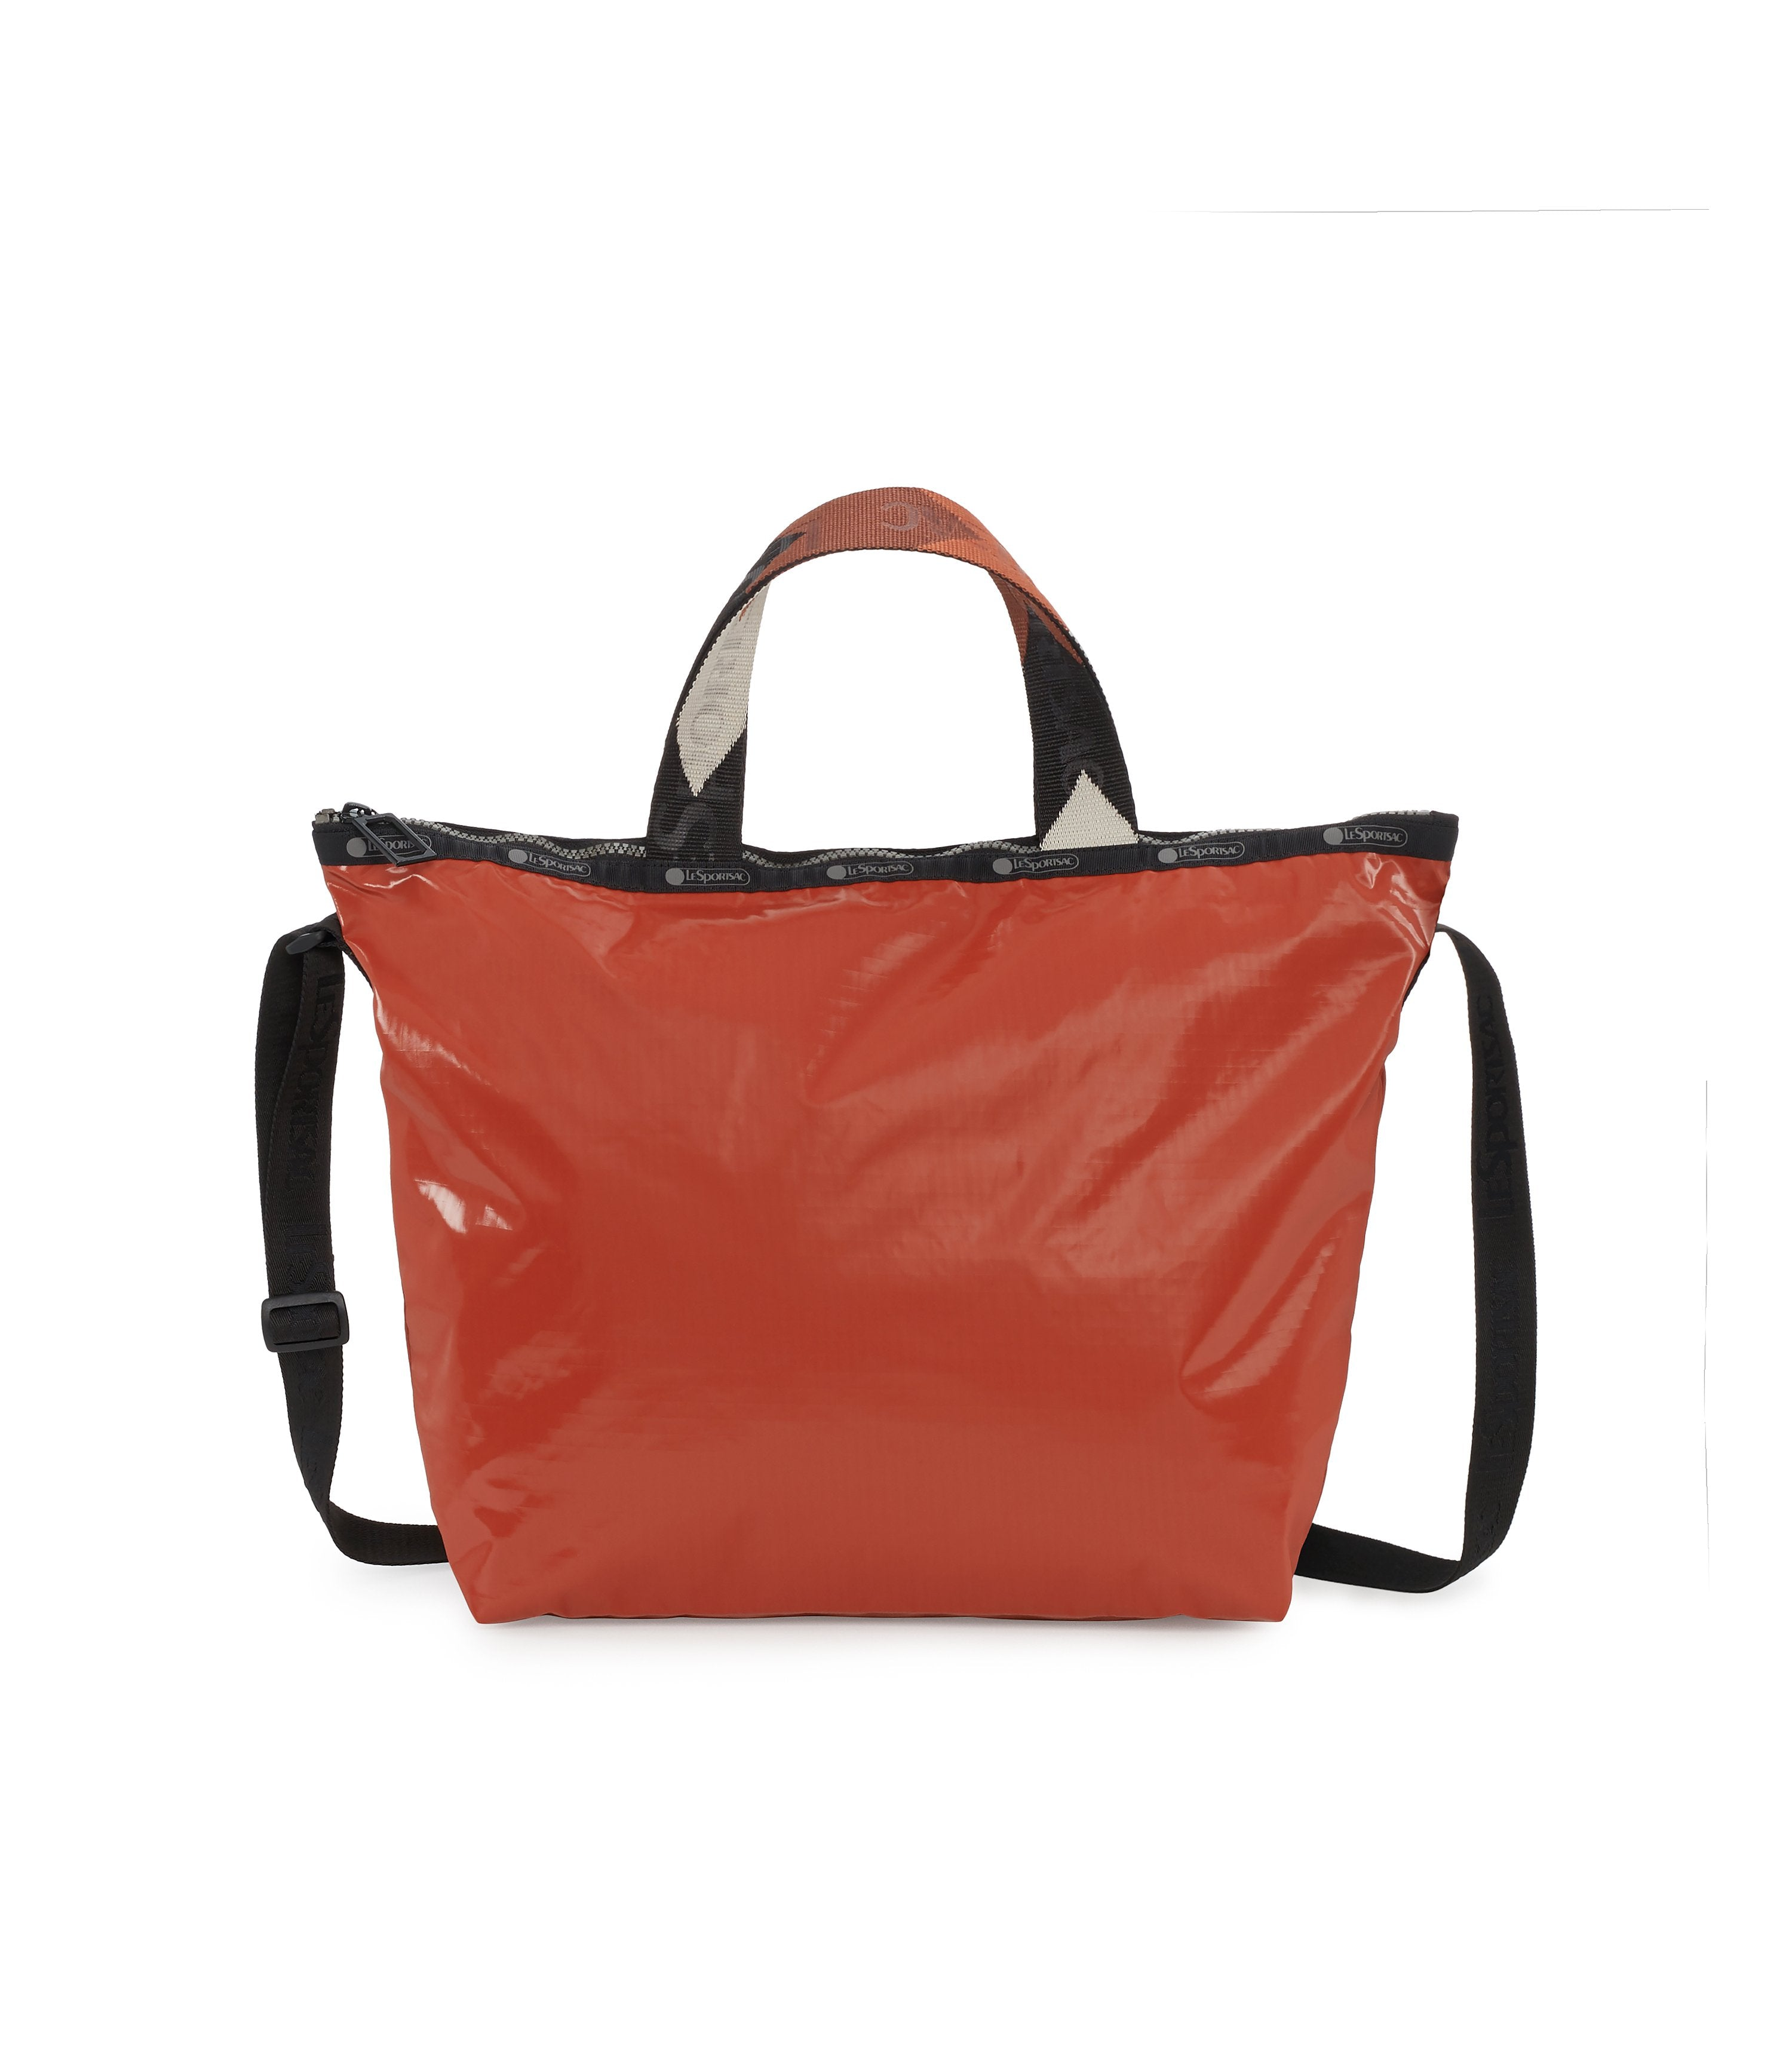 Easy Carry Tote, Nylon Tote Bags, LeSportsac, Cinnabar Arrow Liquid Patent